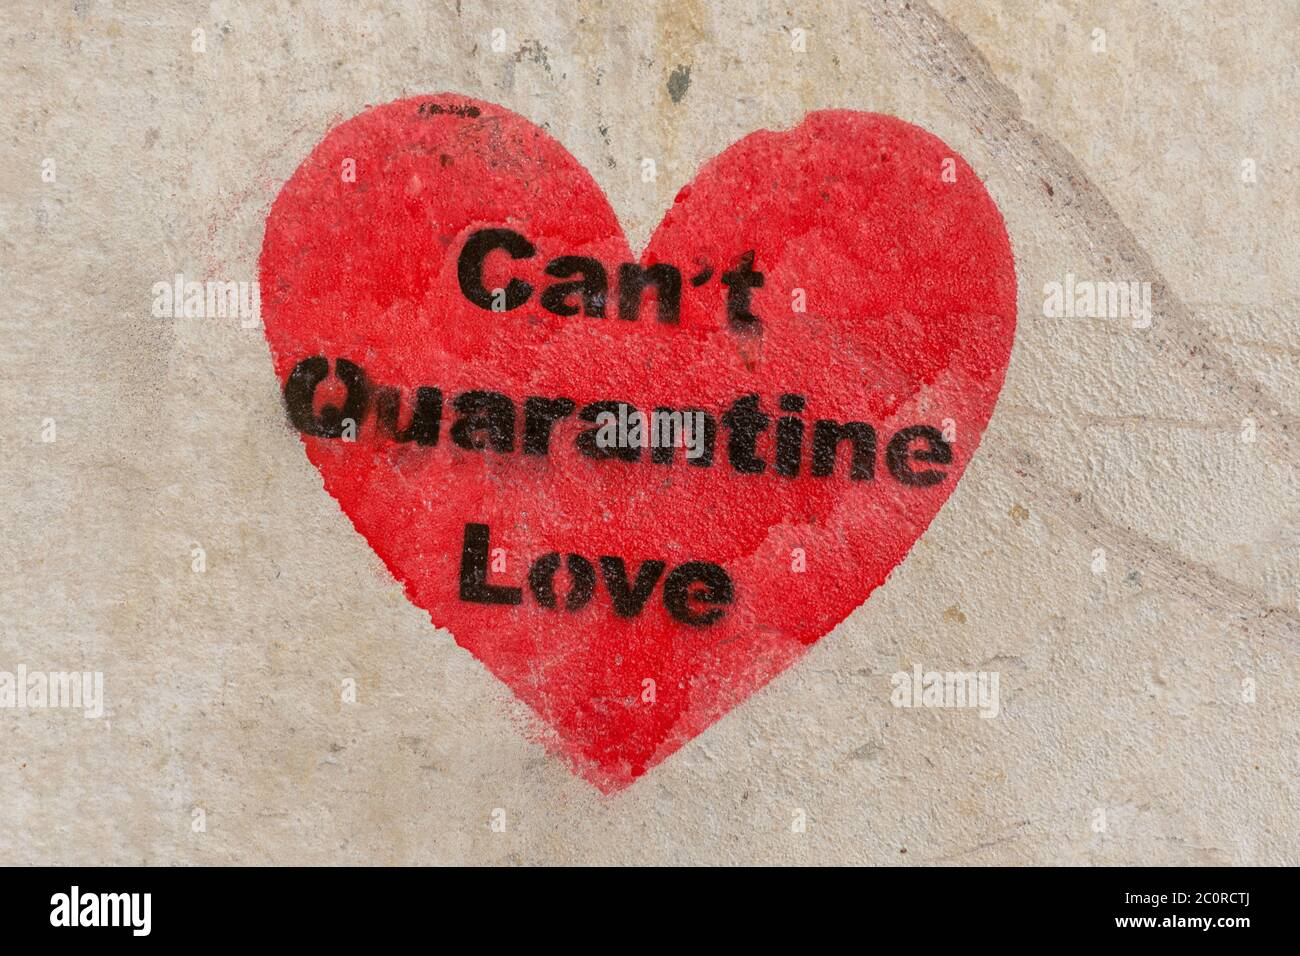 The words Can't quarantine love, in a red heart on a stone wall during the 2020 coronavirus covid-19 pandemic Stock Photo